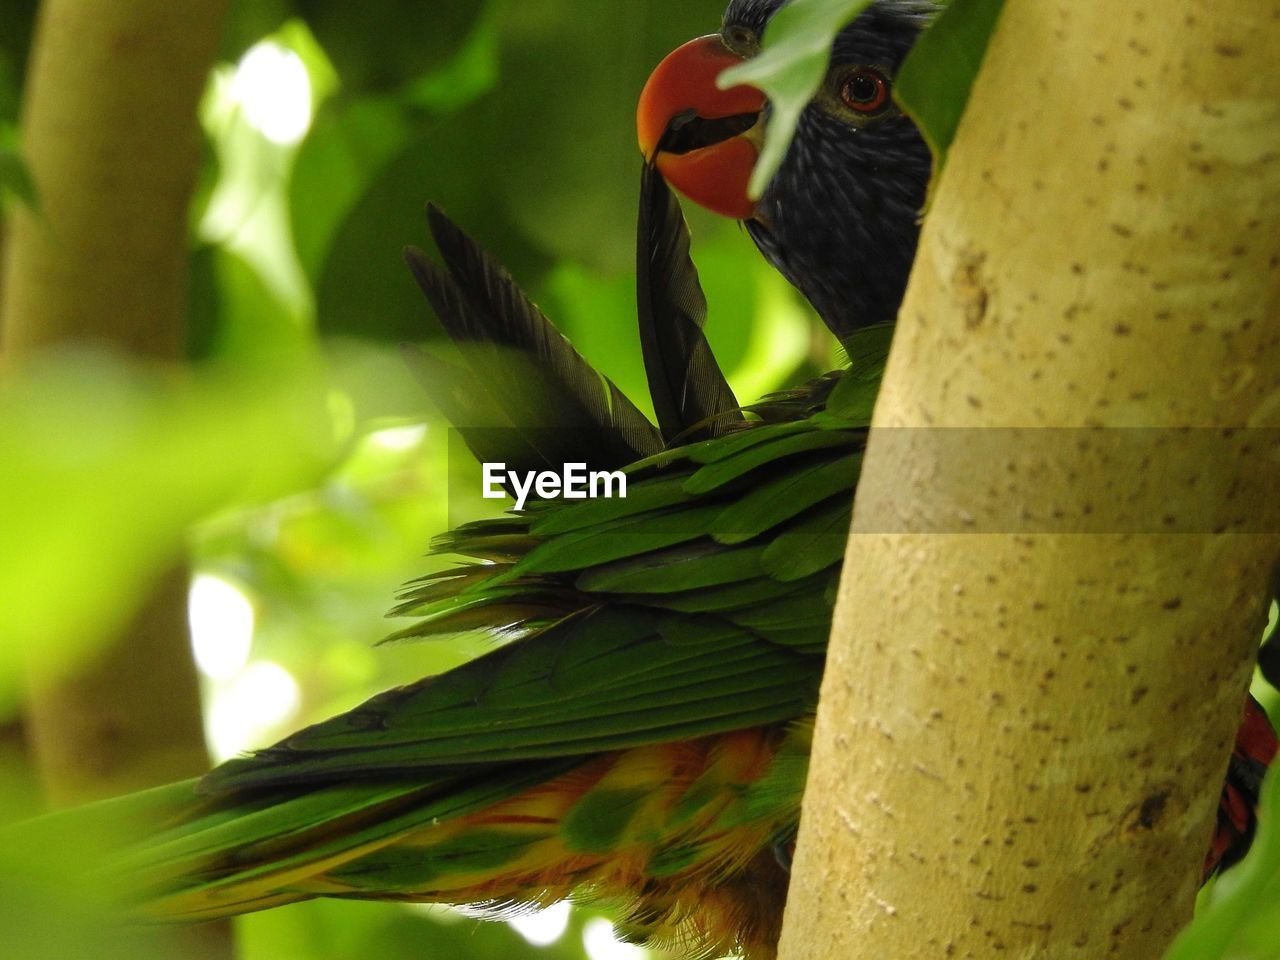 CLOSE-UP OF BIRD IN A TREE